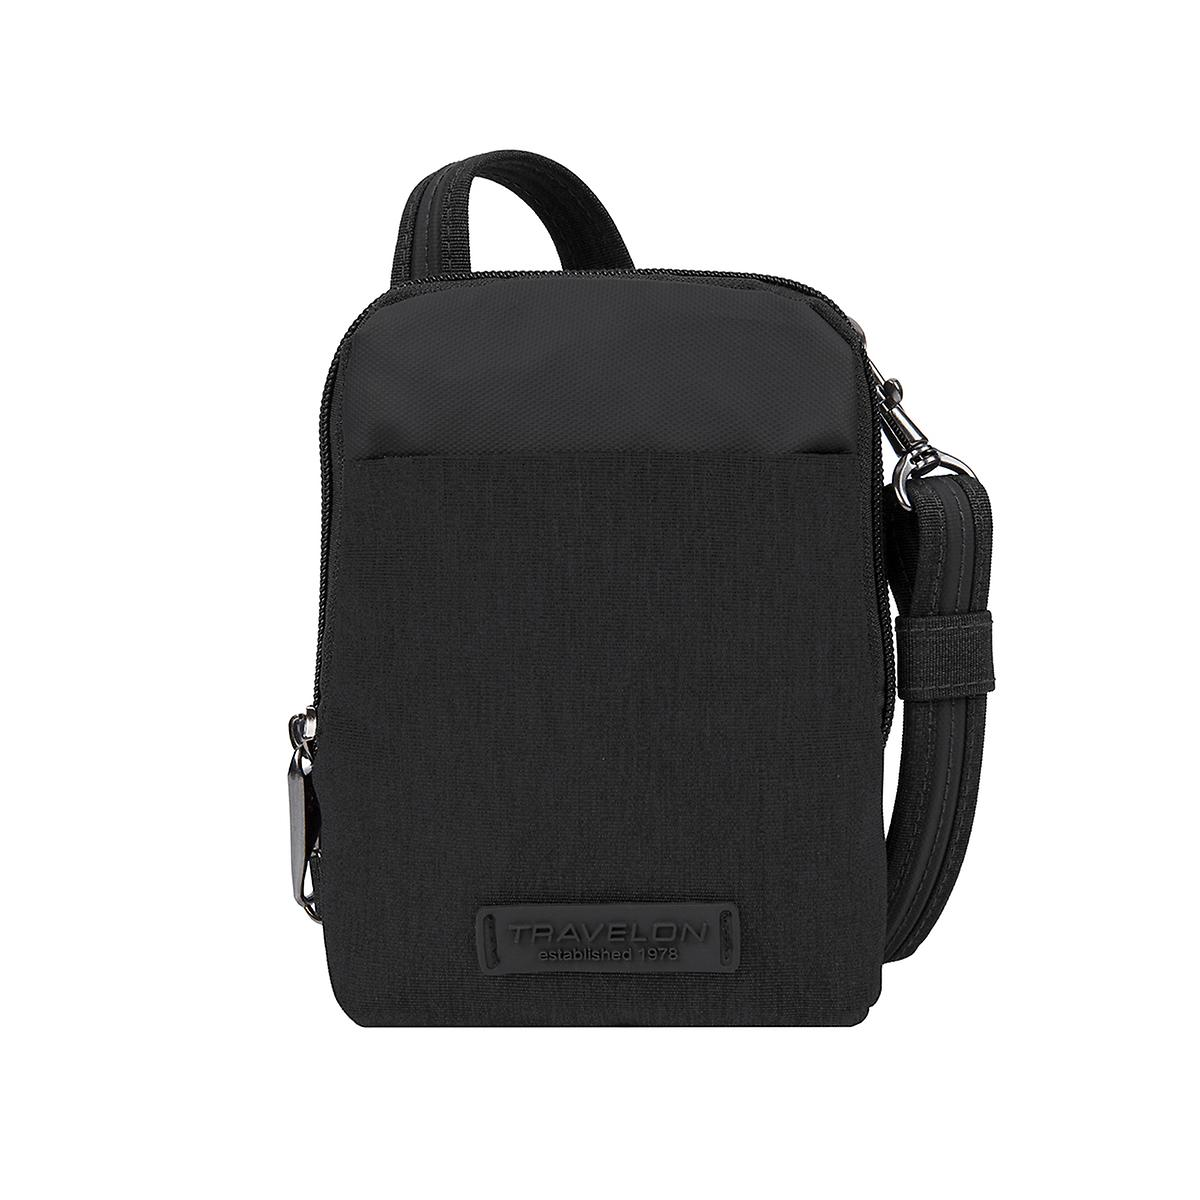 Travelon Black Anti-Theft Stadium Crossbody Bag